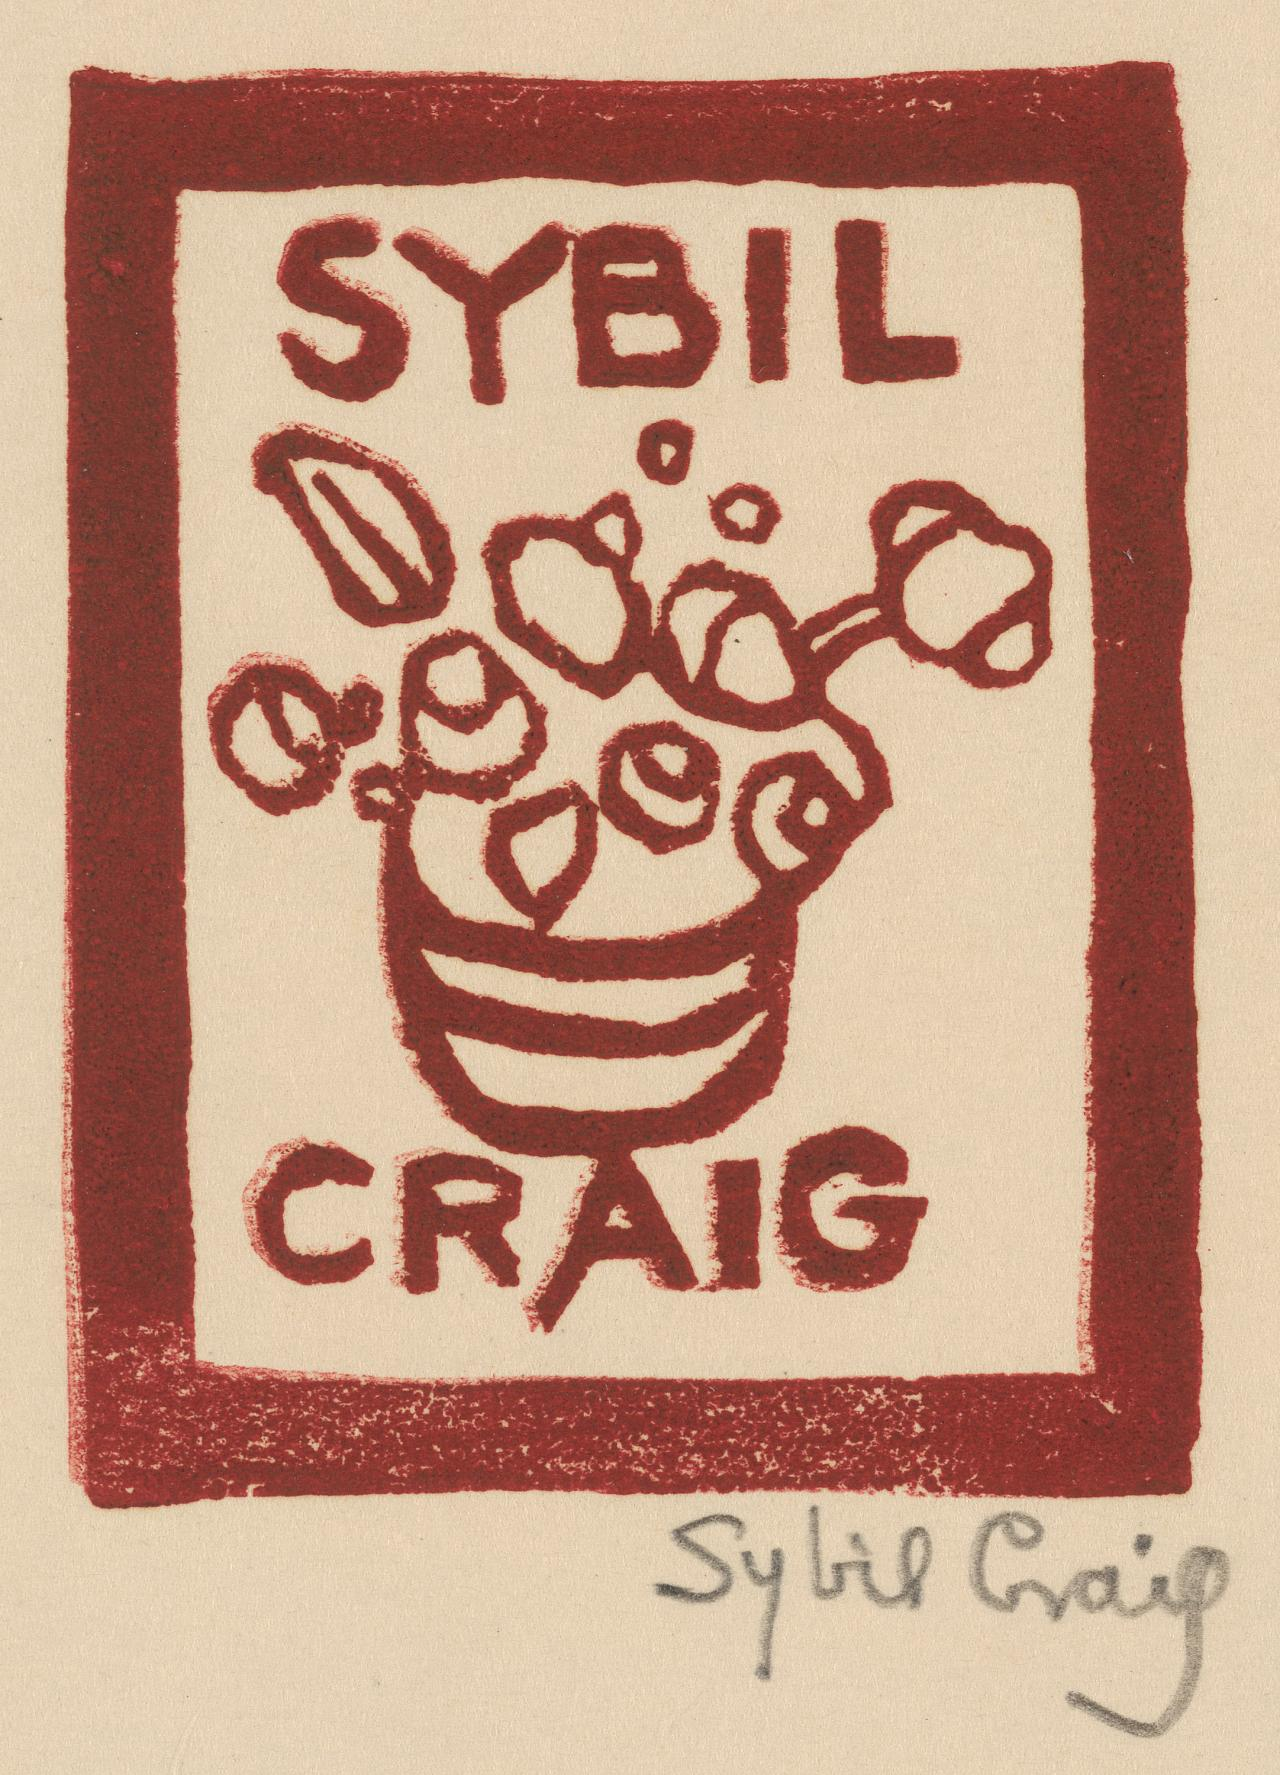 Bookplate of Sybil Craig (vase of flowers)